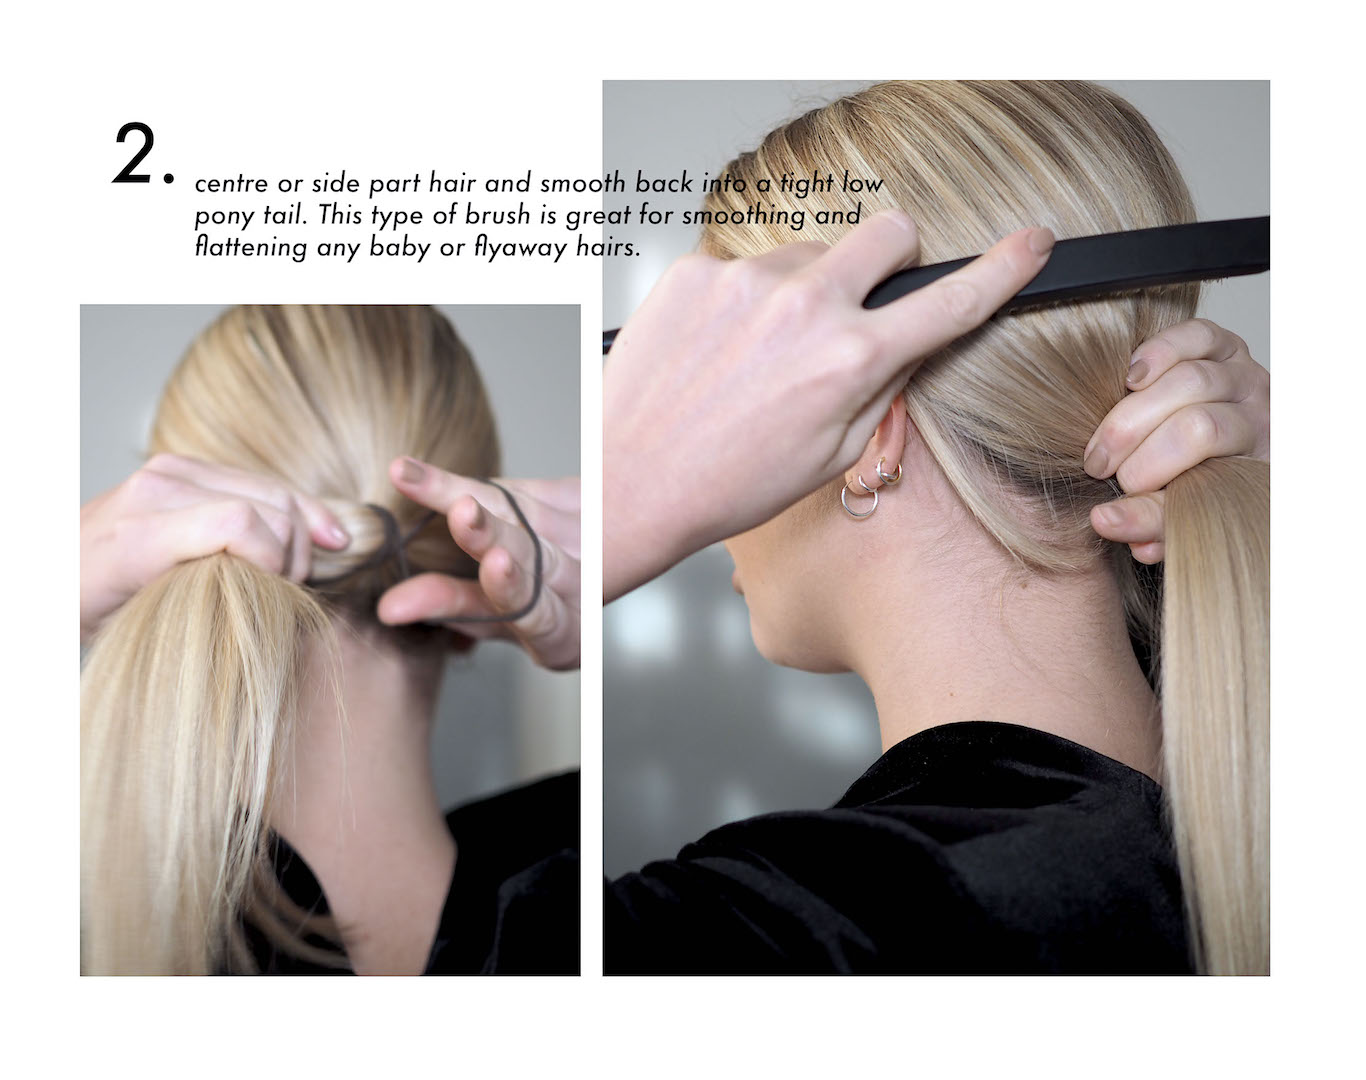 step-2-ghd-copper-get-the-look-sleek-chignon